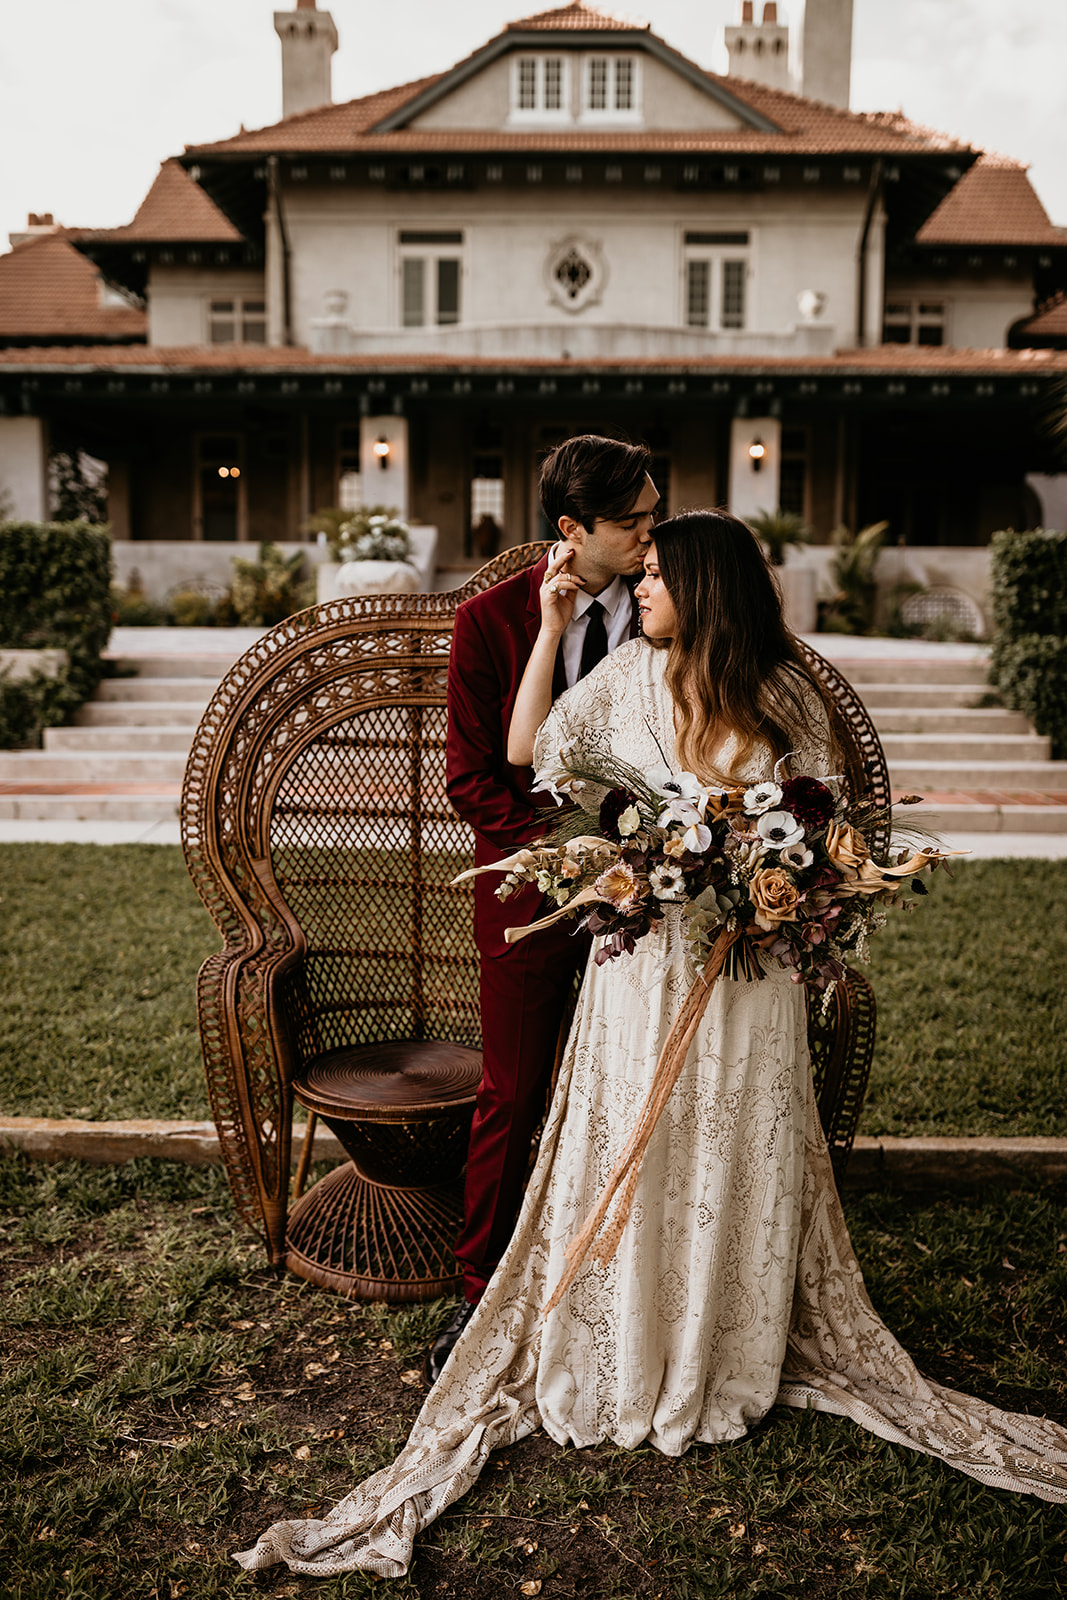 SydonieMansionWedding-4.jpg